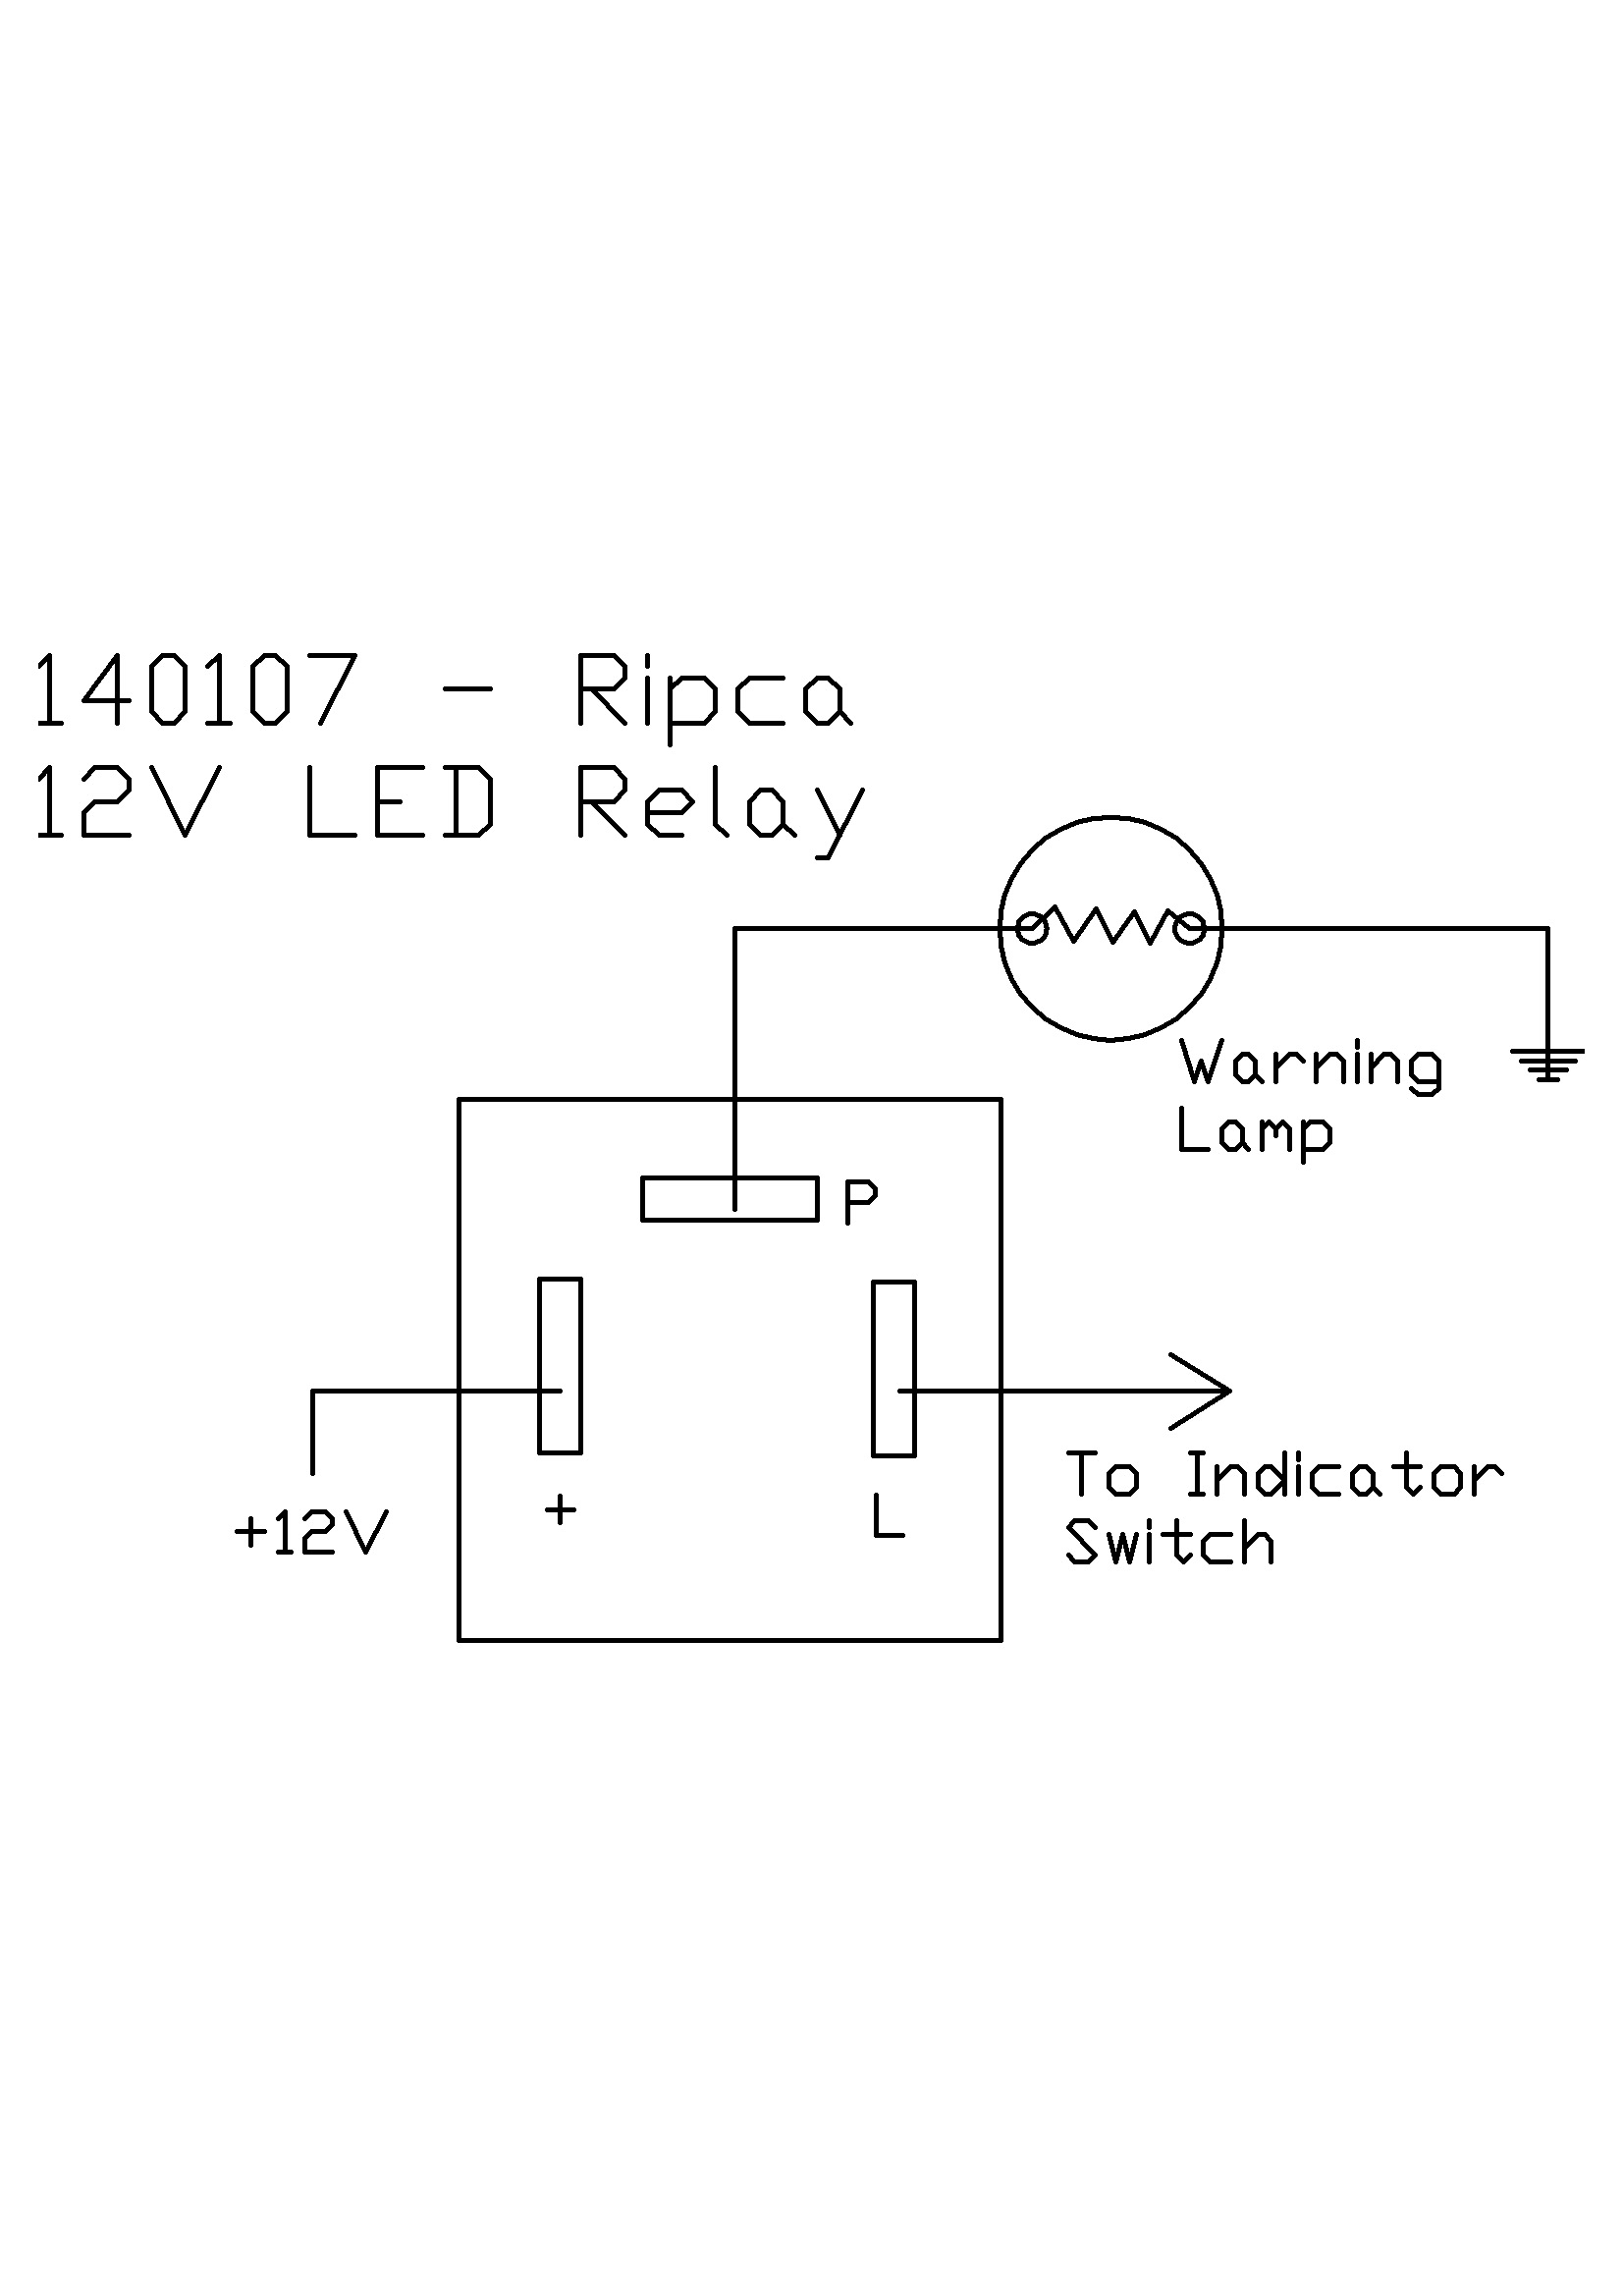 140107 ripca 12 volt led flasher unit flasher unit wiring diagram at alyssarenee.co